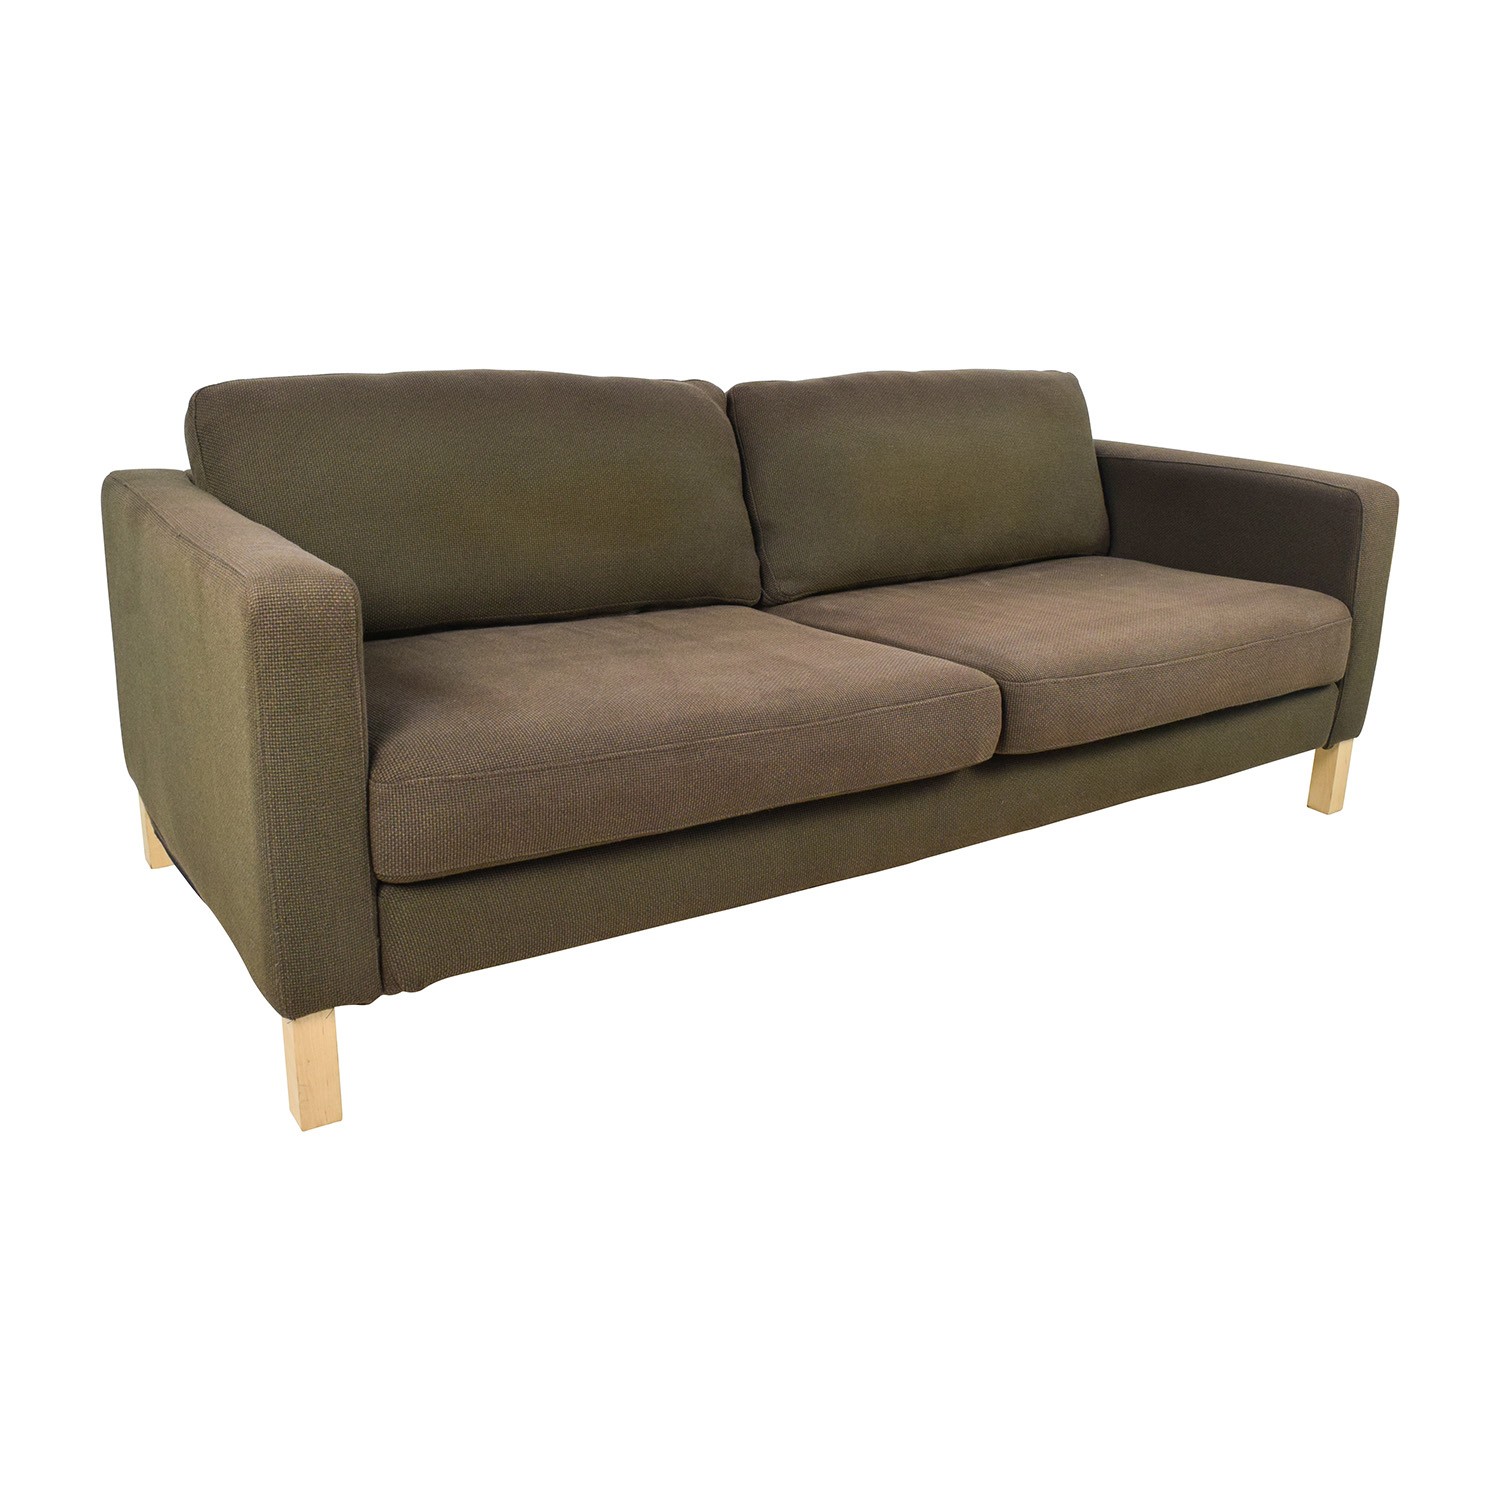 Ikea sofa leder design sofa leder ikea ikea timsfors for Ikea sofa set